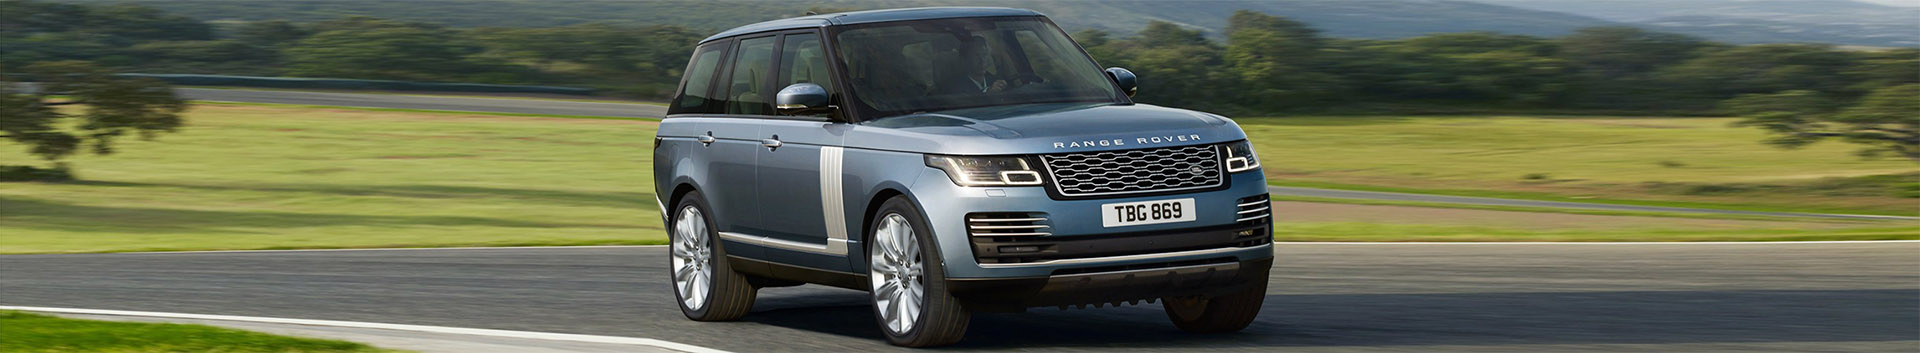 2018 Range Rover Driving on Track